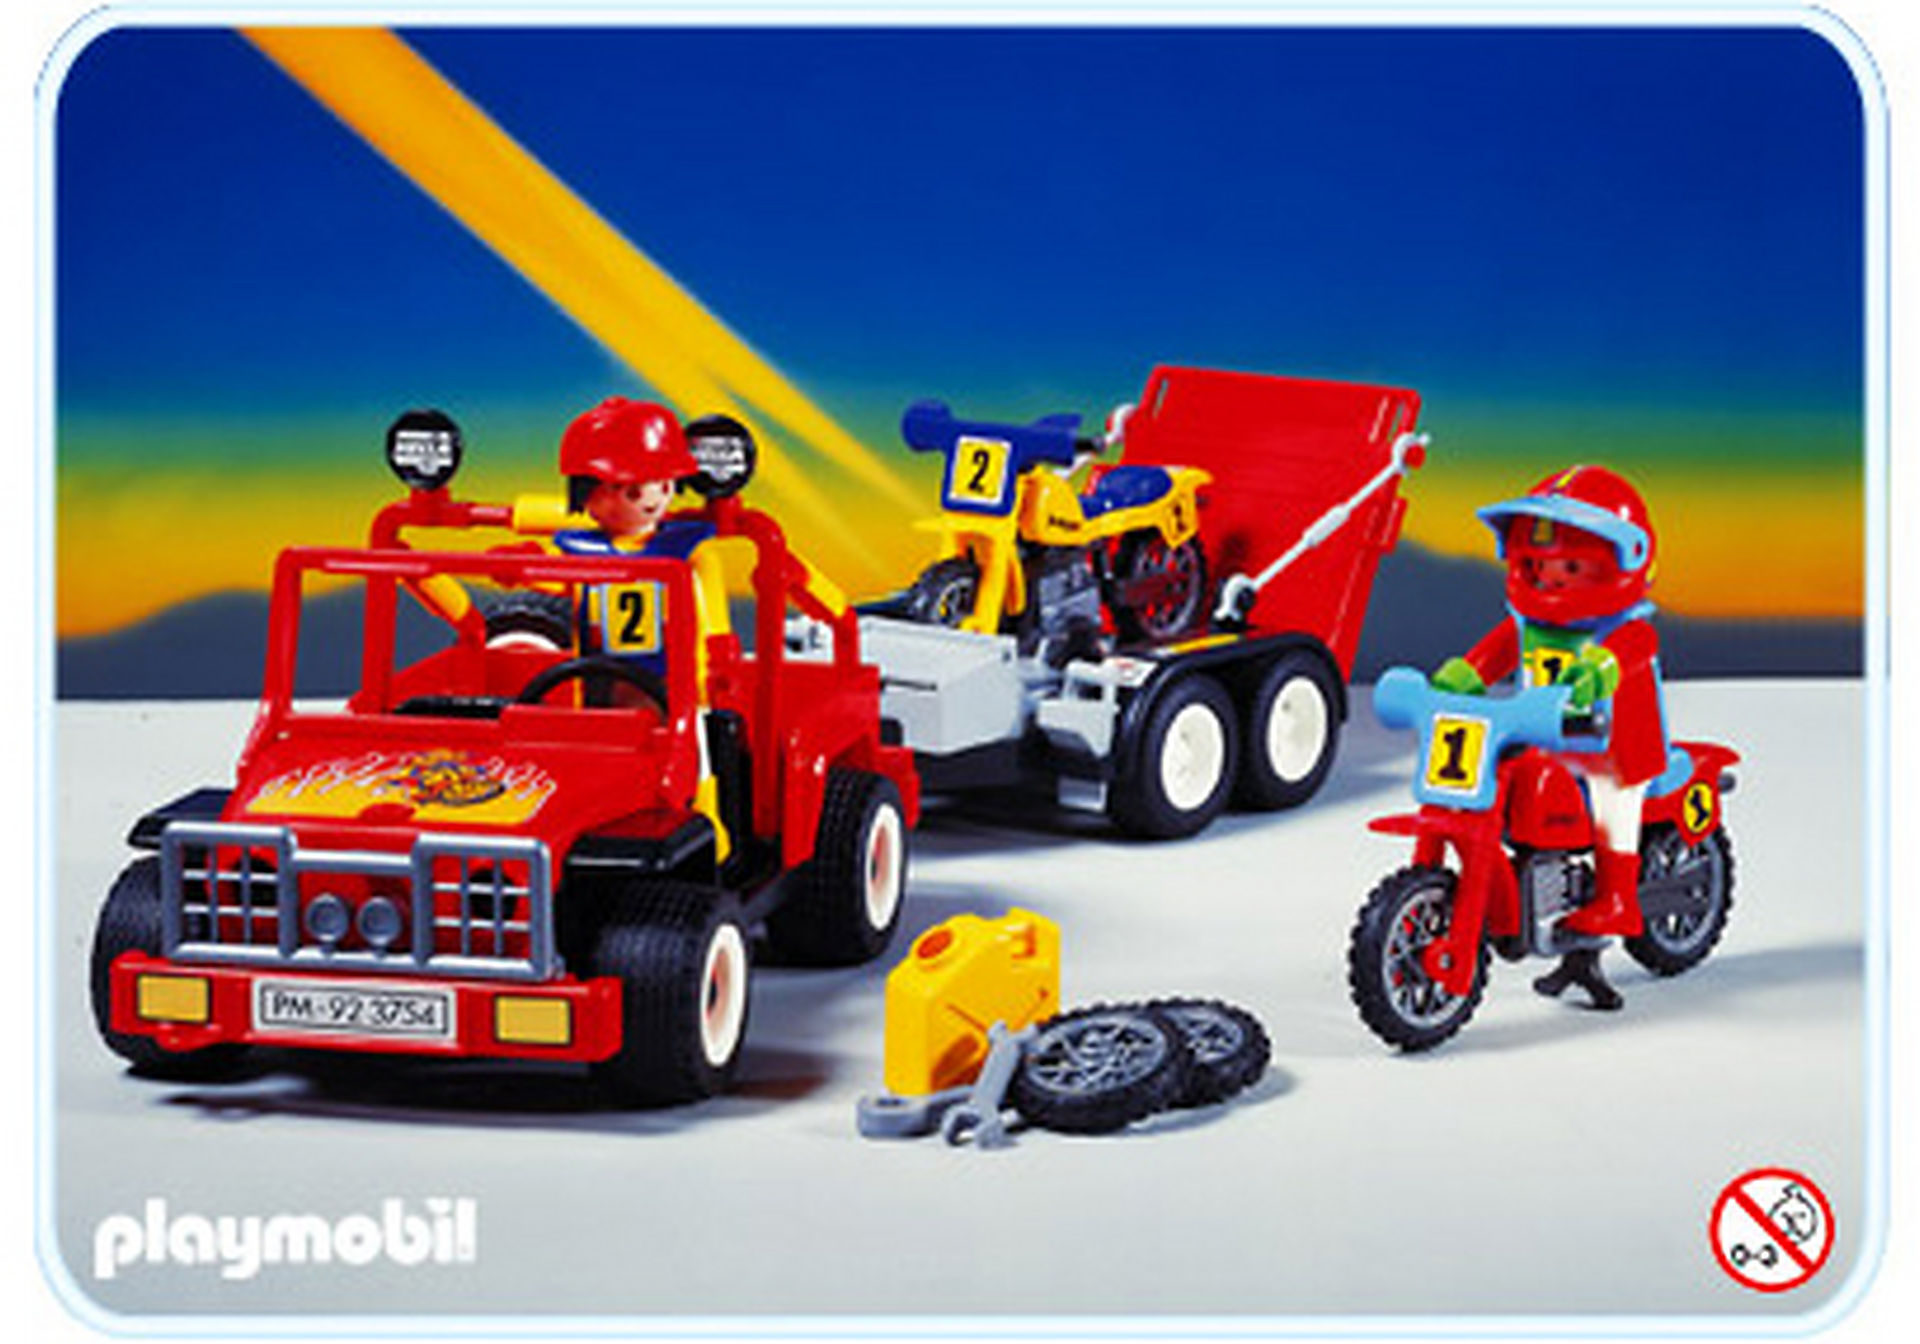 http://media.playmobil.com/i/playmobil/3754-A_product_detail/Voiture tout terrain / MotoCross